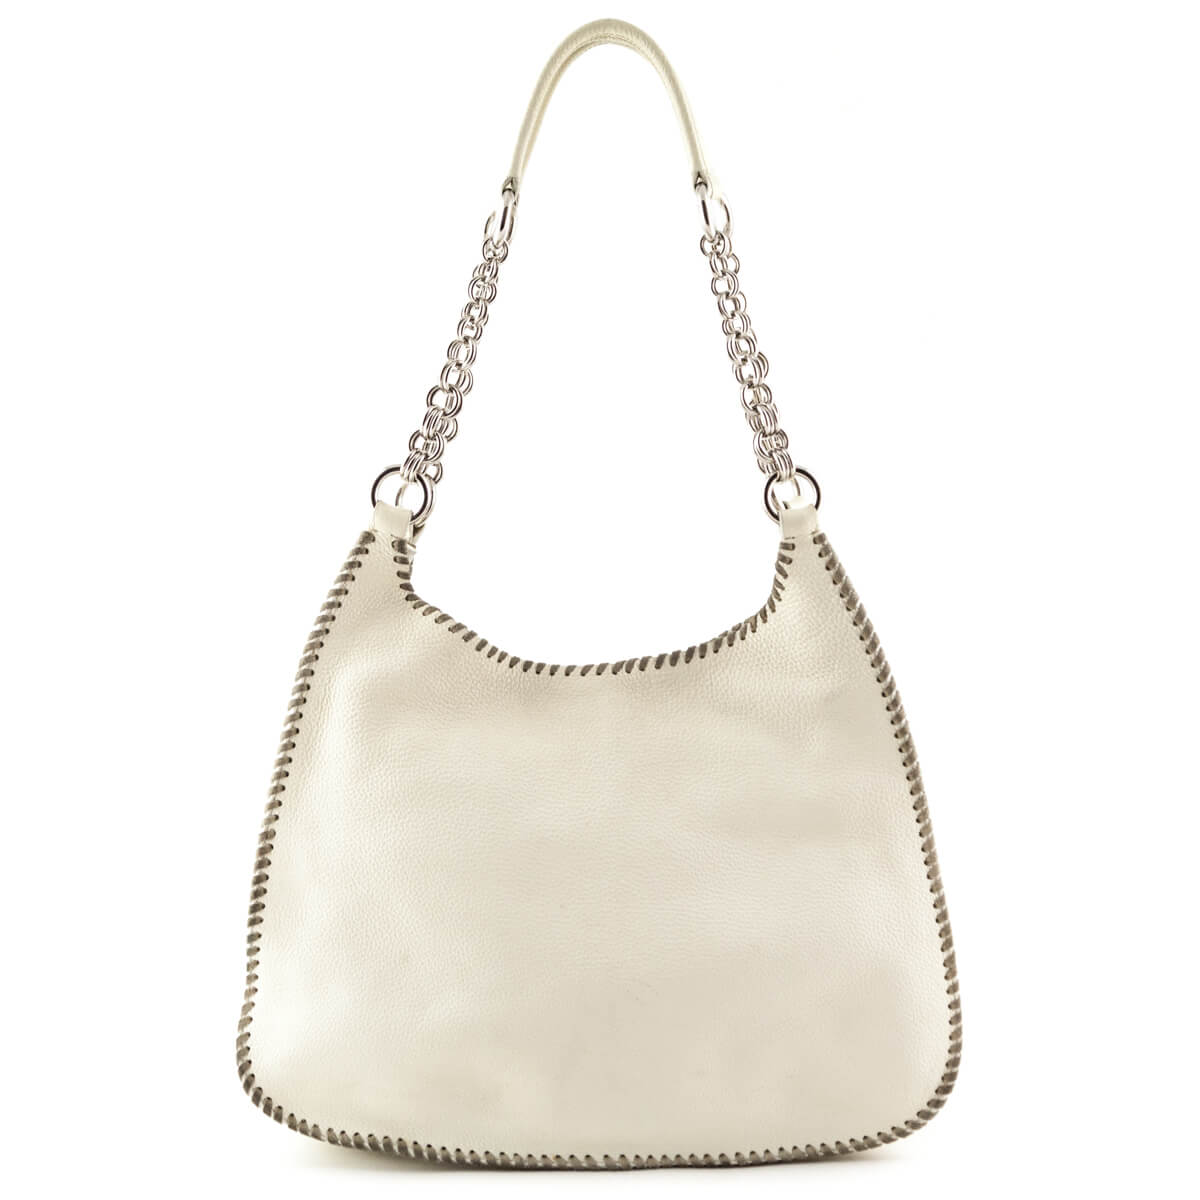 98a1943ba9 Prada Cream Vitello Daino Whipstich Shoulder Bag - LOVE that BAG - Preowned  Authentic Designer Handbags ...